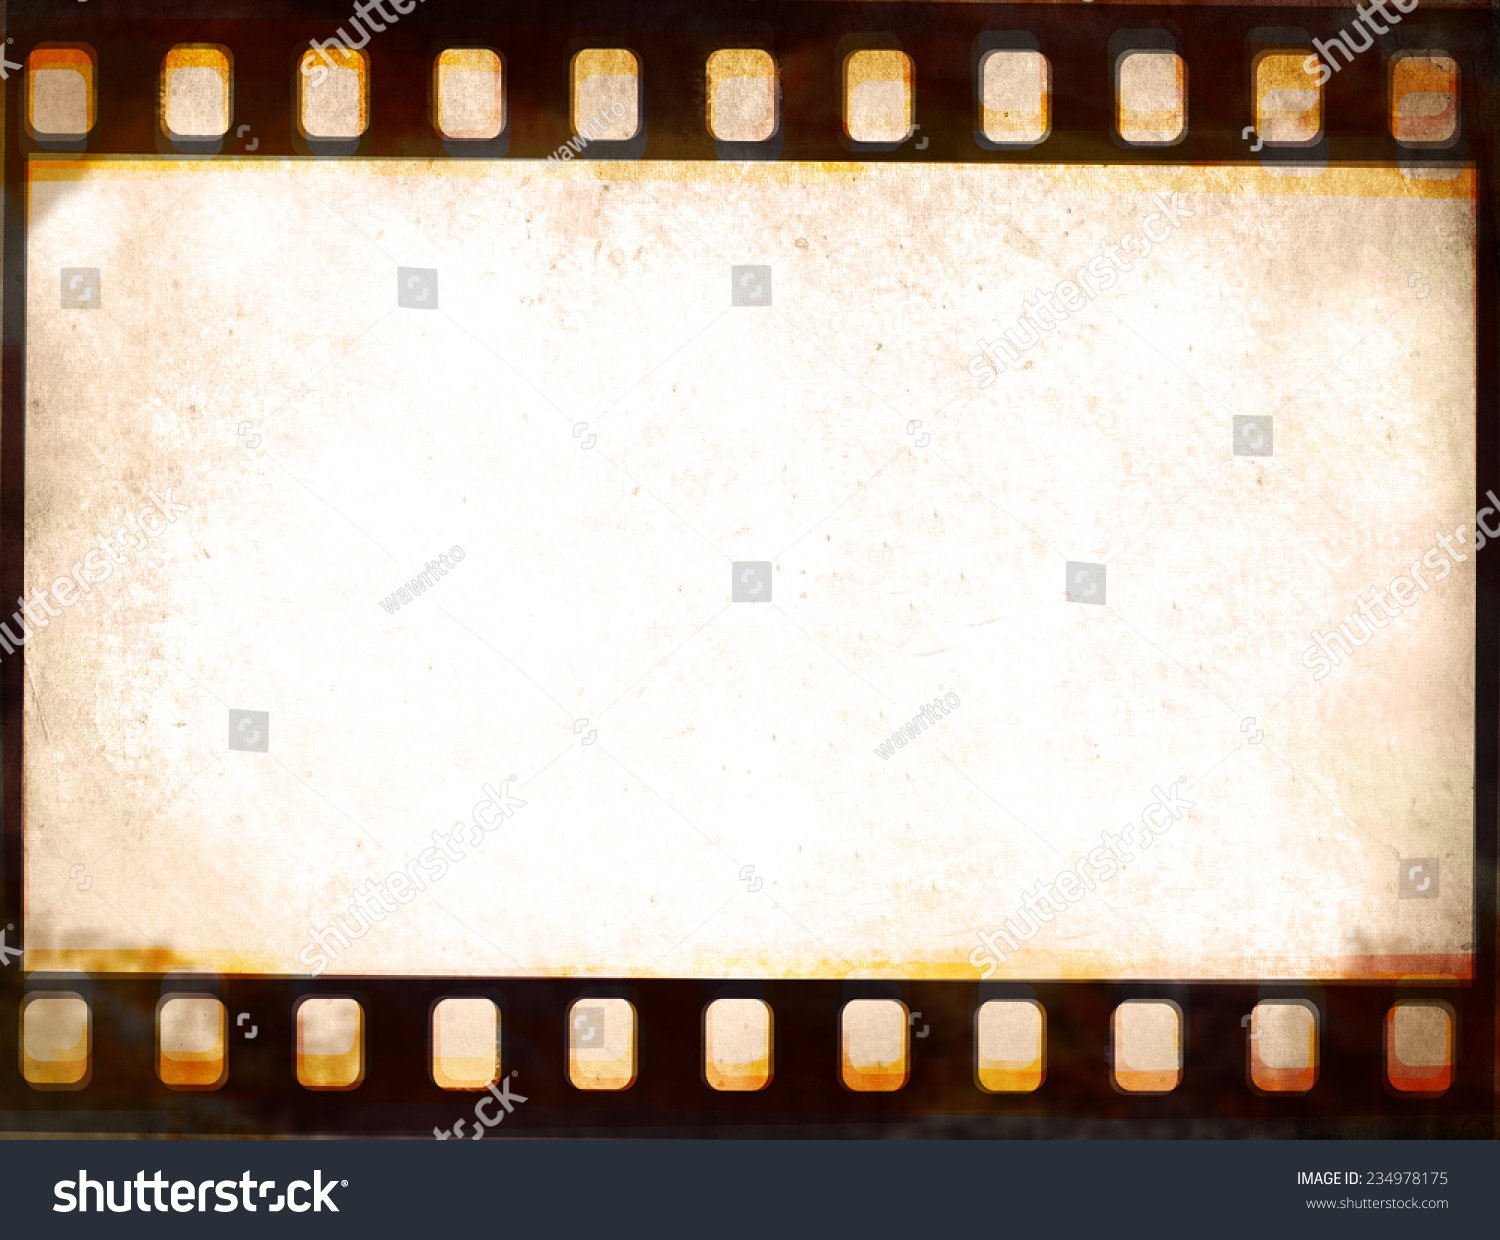 Grunge Film Strip Frame Background Stock Illustration 234978175 ...